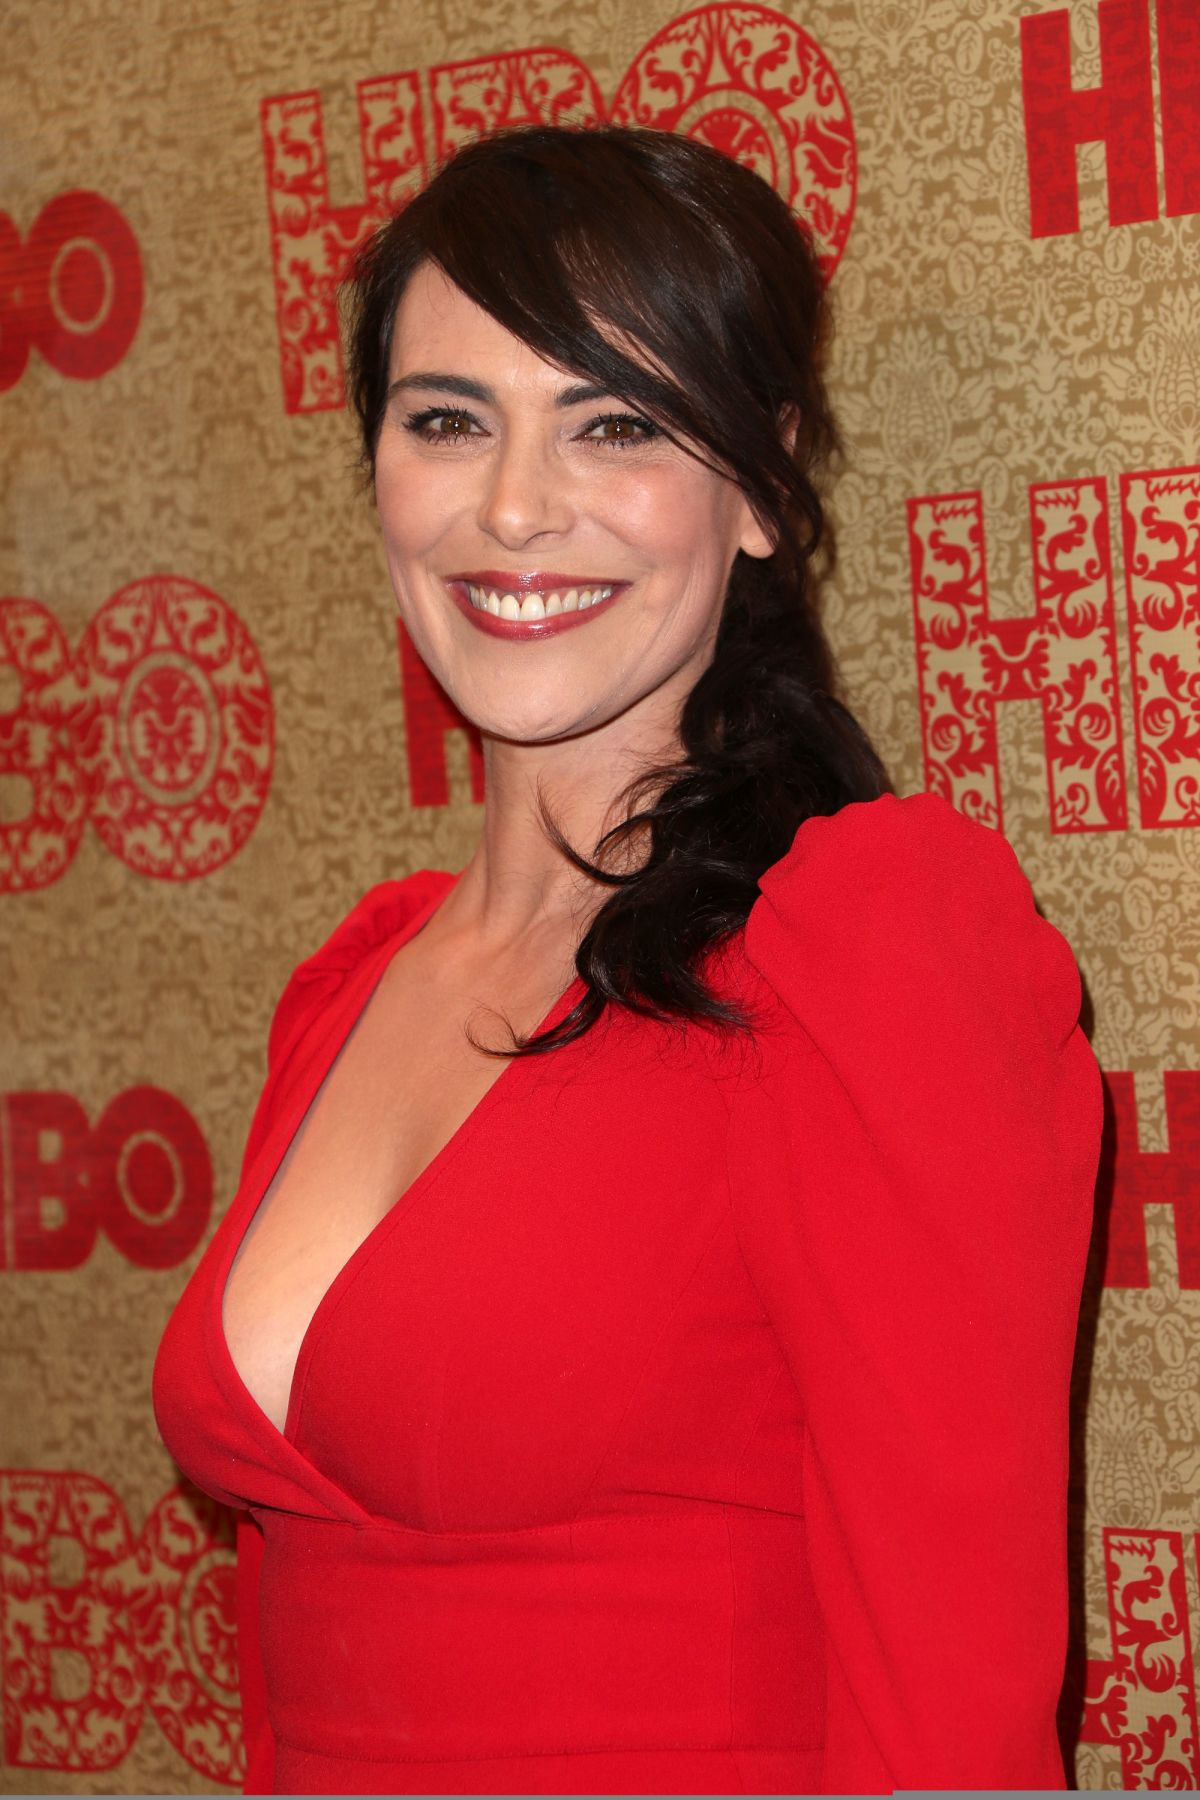 MICHELLE FORBES at HBO Golden Globe After Party – HawtCelebs Michelle Forbes Birthday